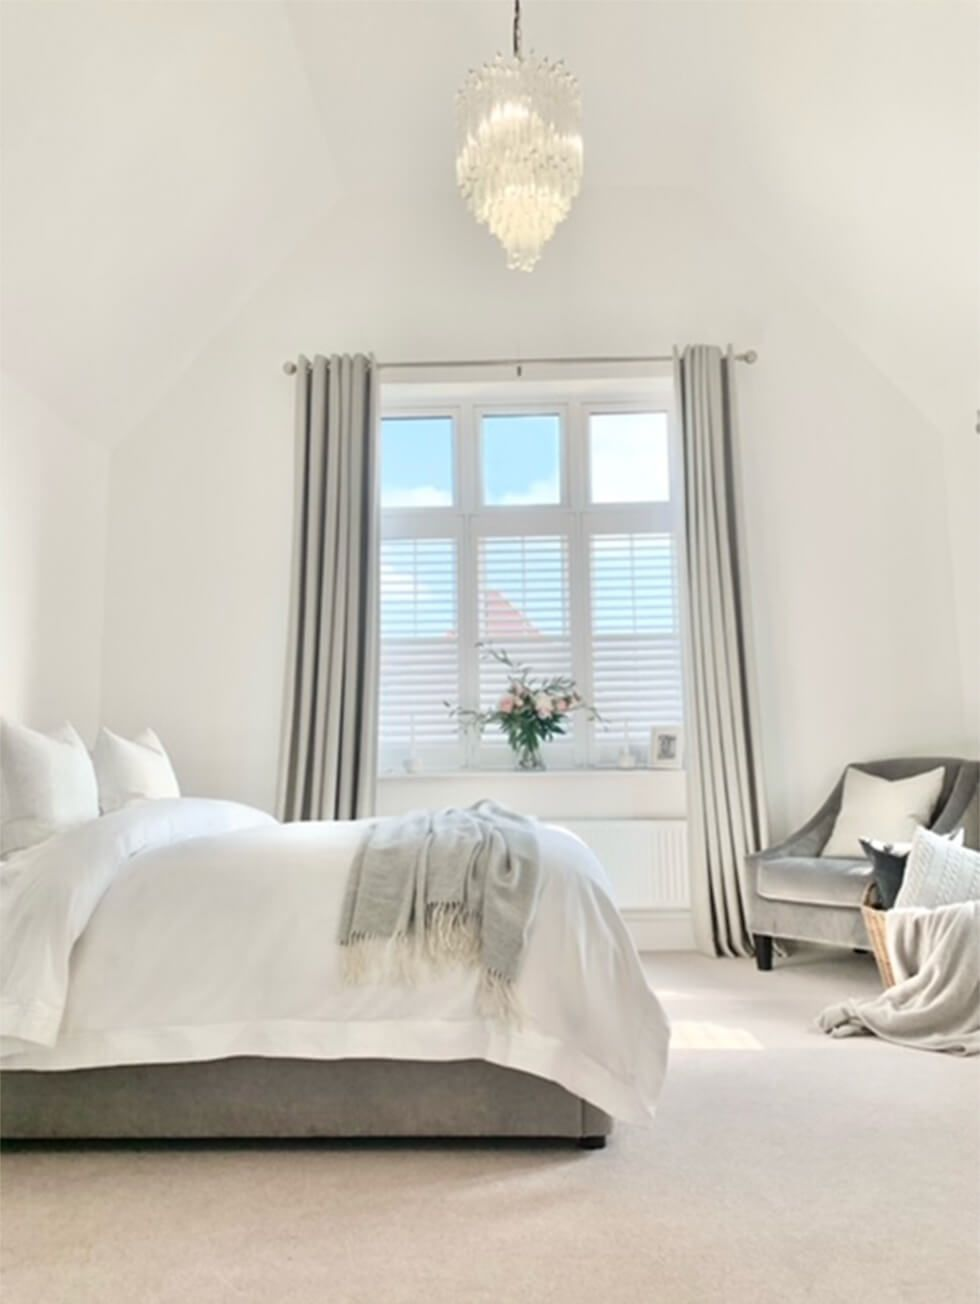 Elegant neutral bedroom decorated with an armchair, double bed and chandelier